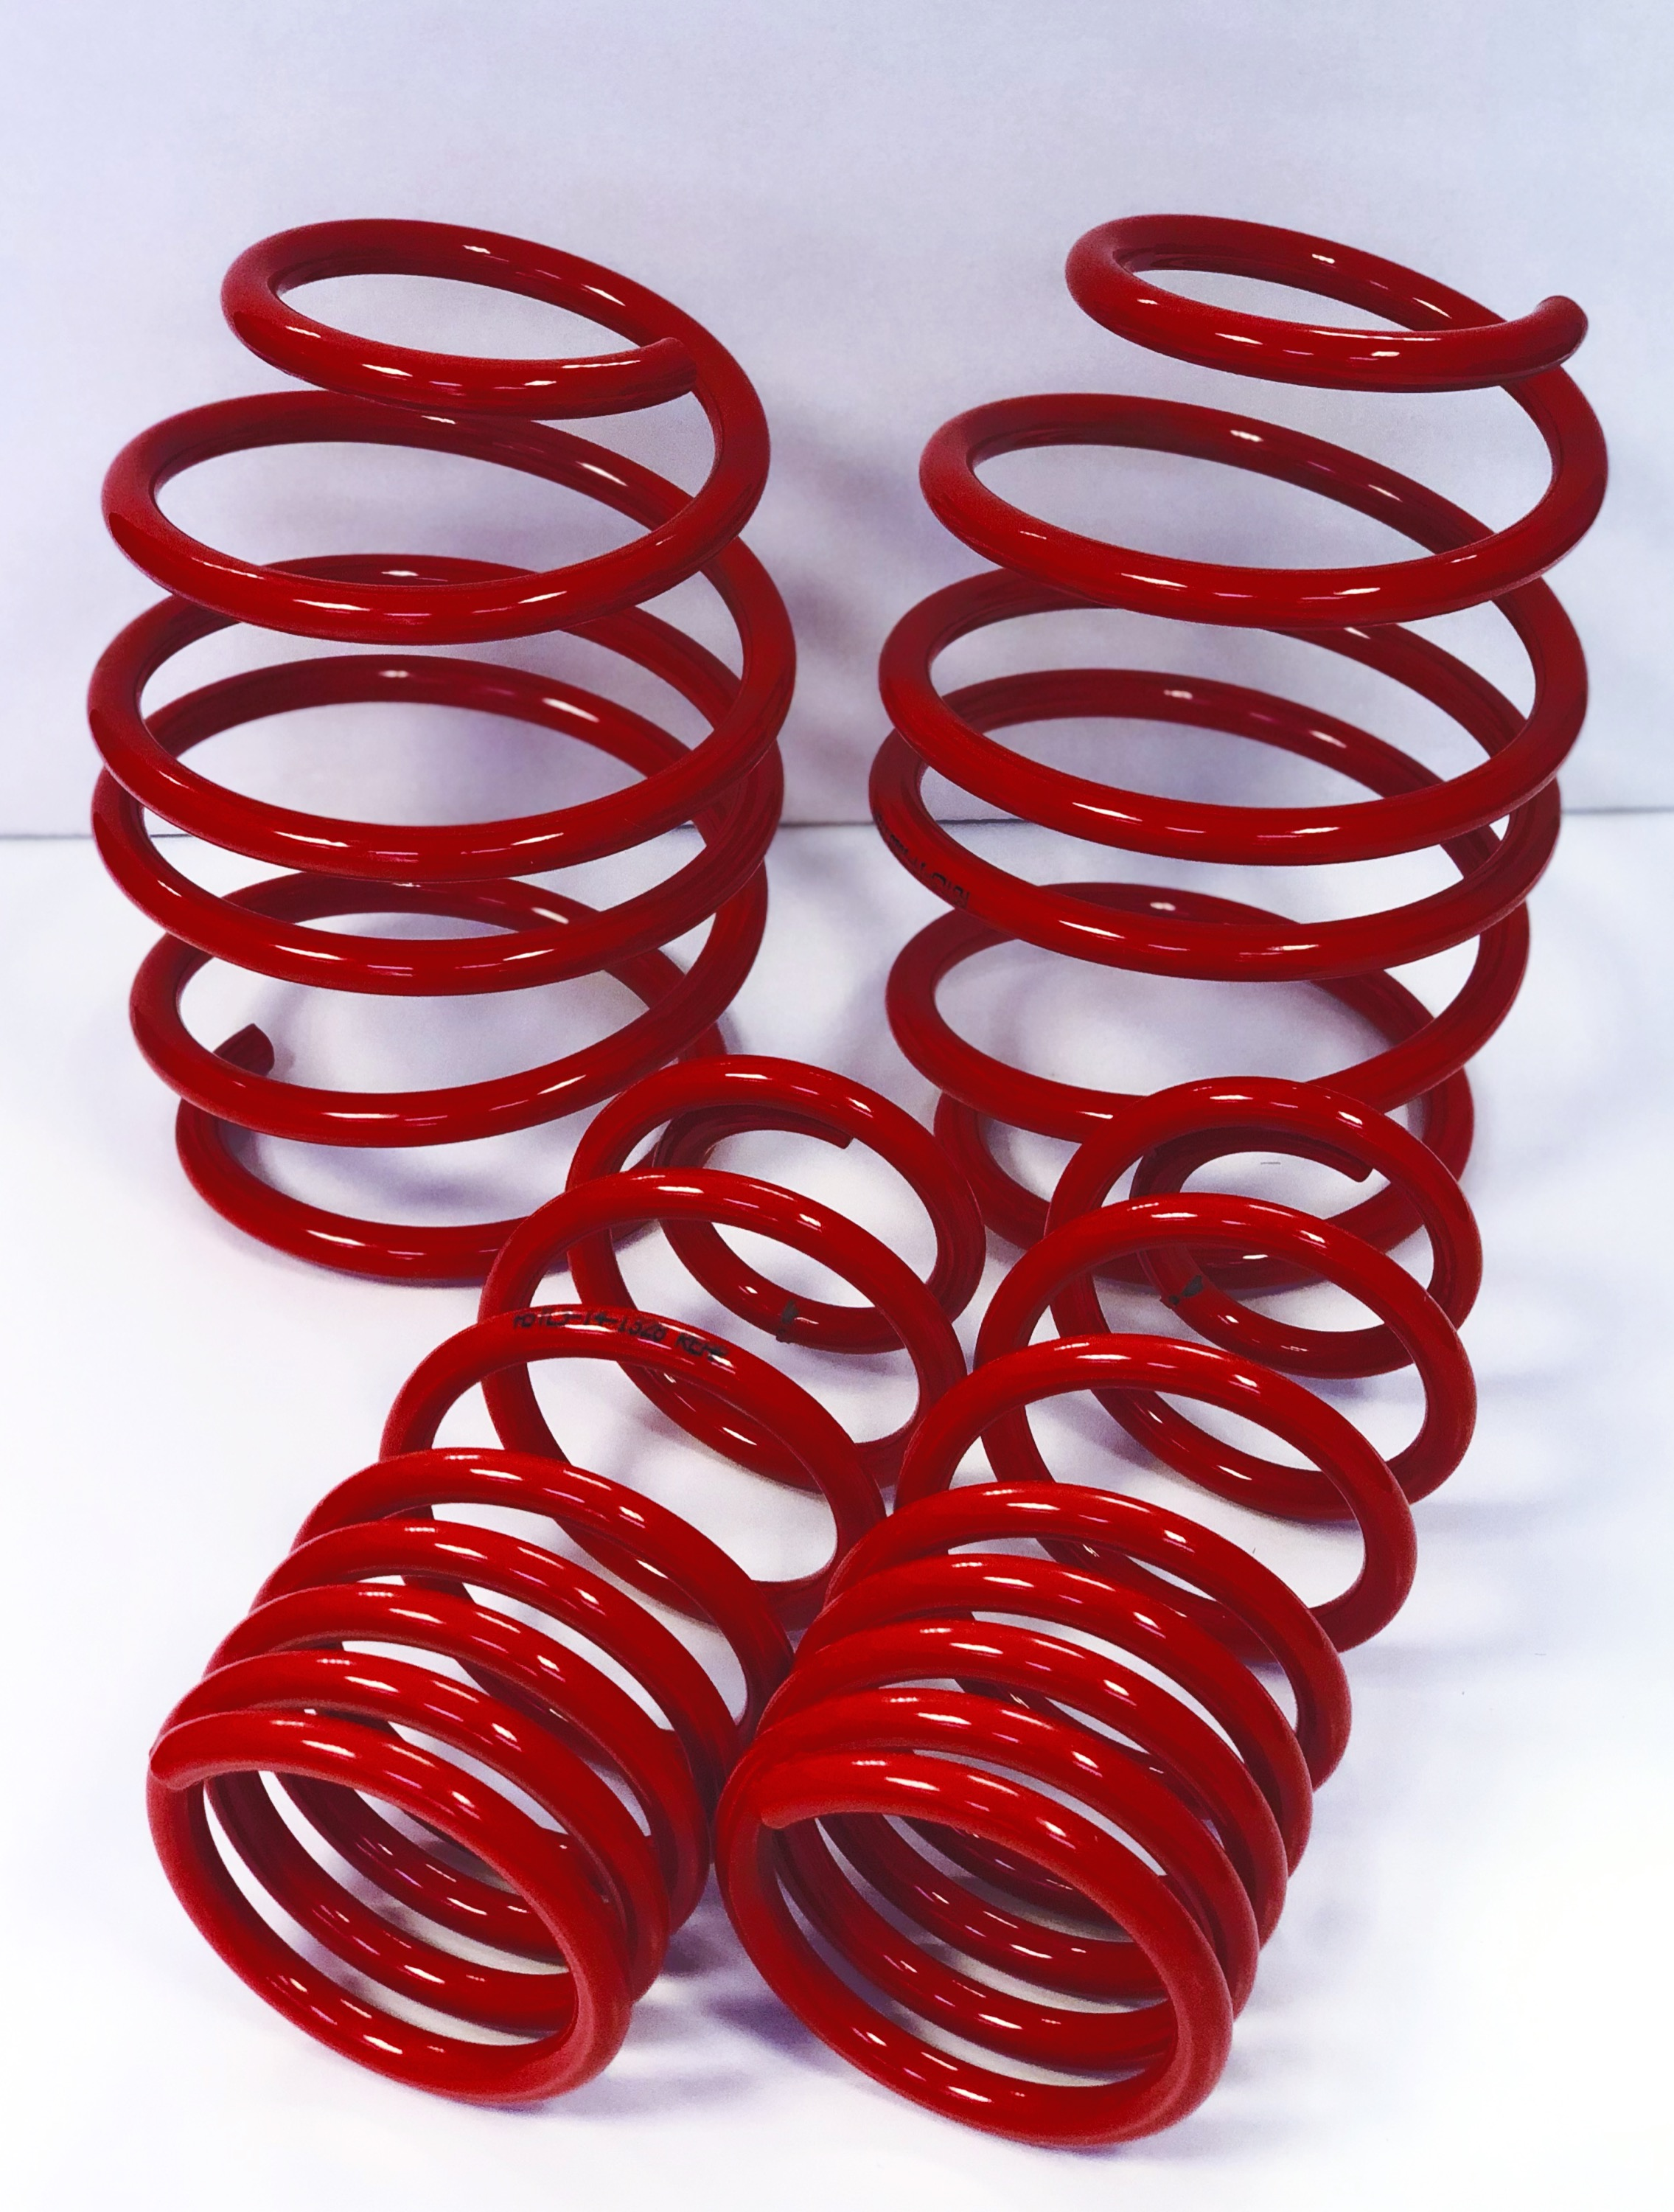 Vauxhall ASTRA AST Suspension Lowering Springs 45MM